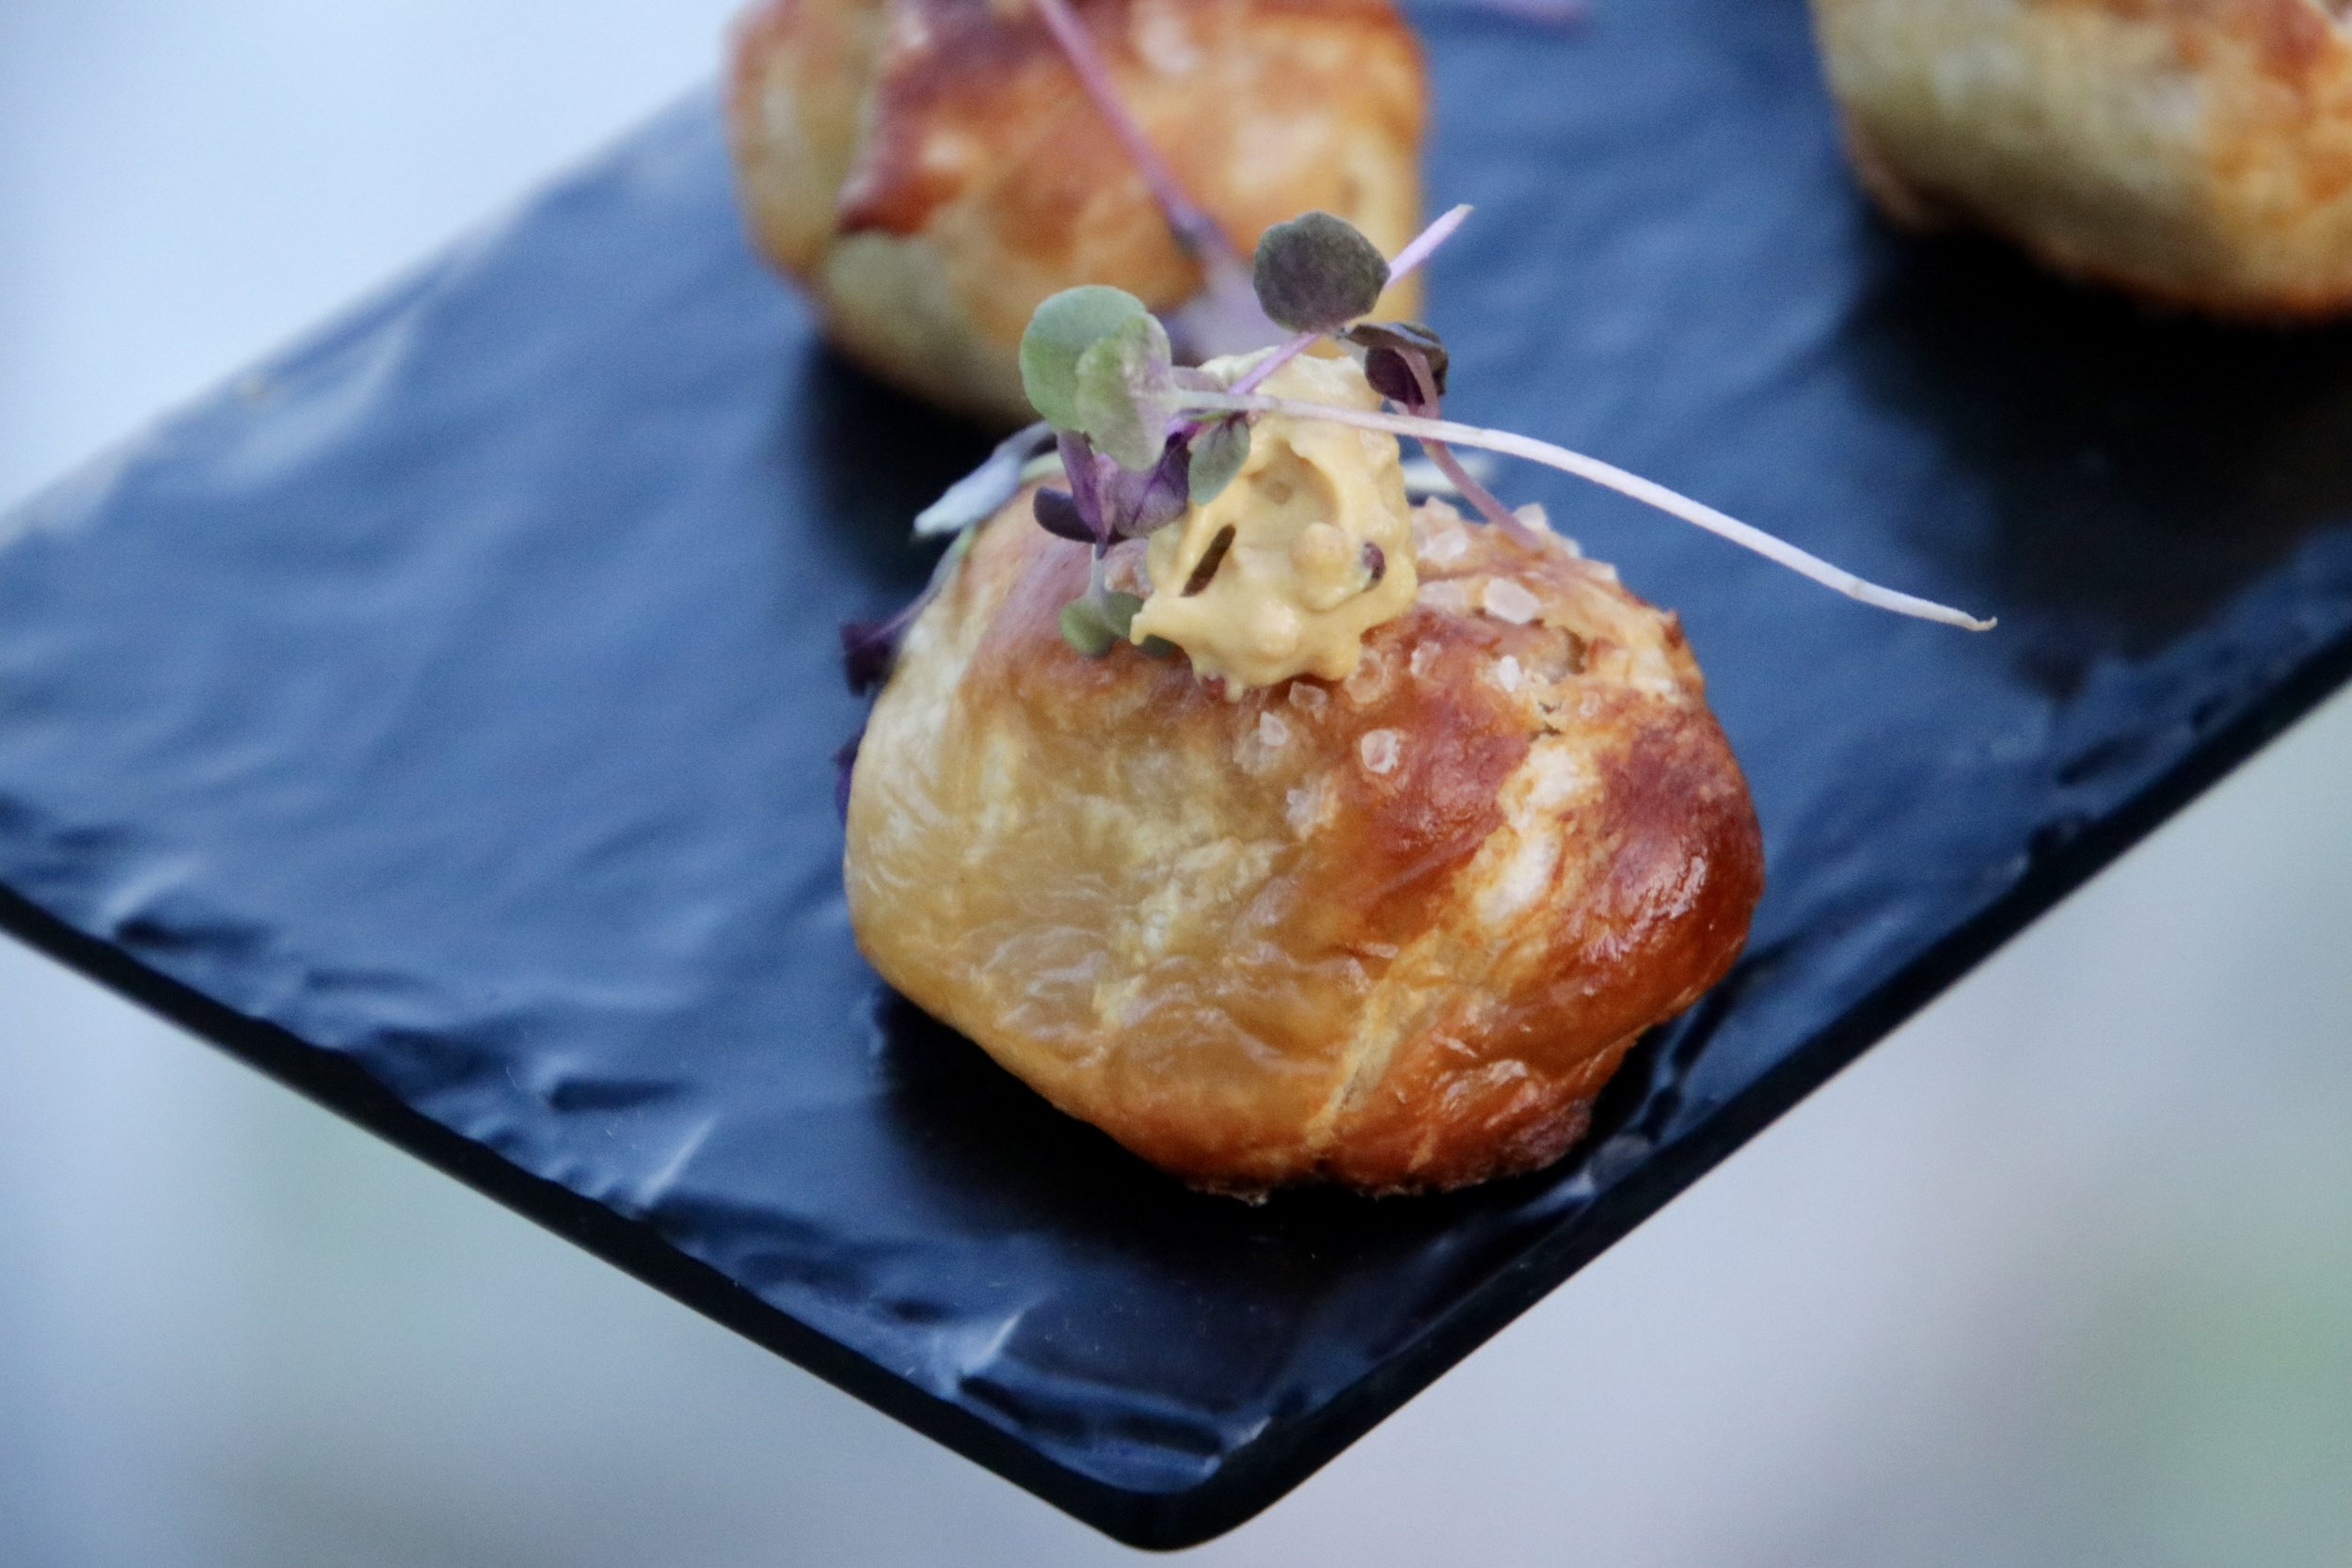 Pretzel Pigs topped with a touch of mustard and micro greens will have you rethink your ordinary pigs in a blanket.